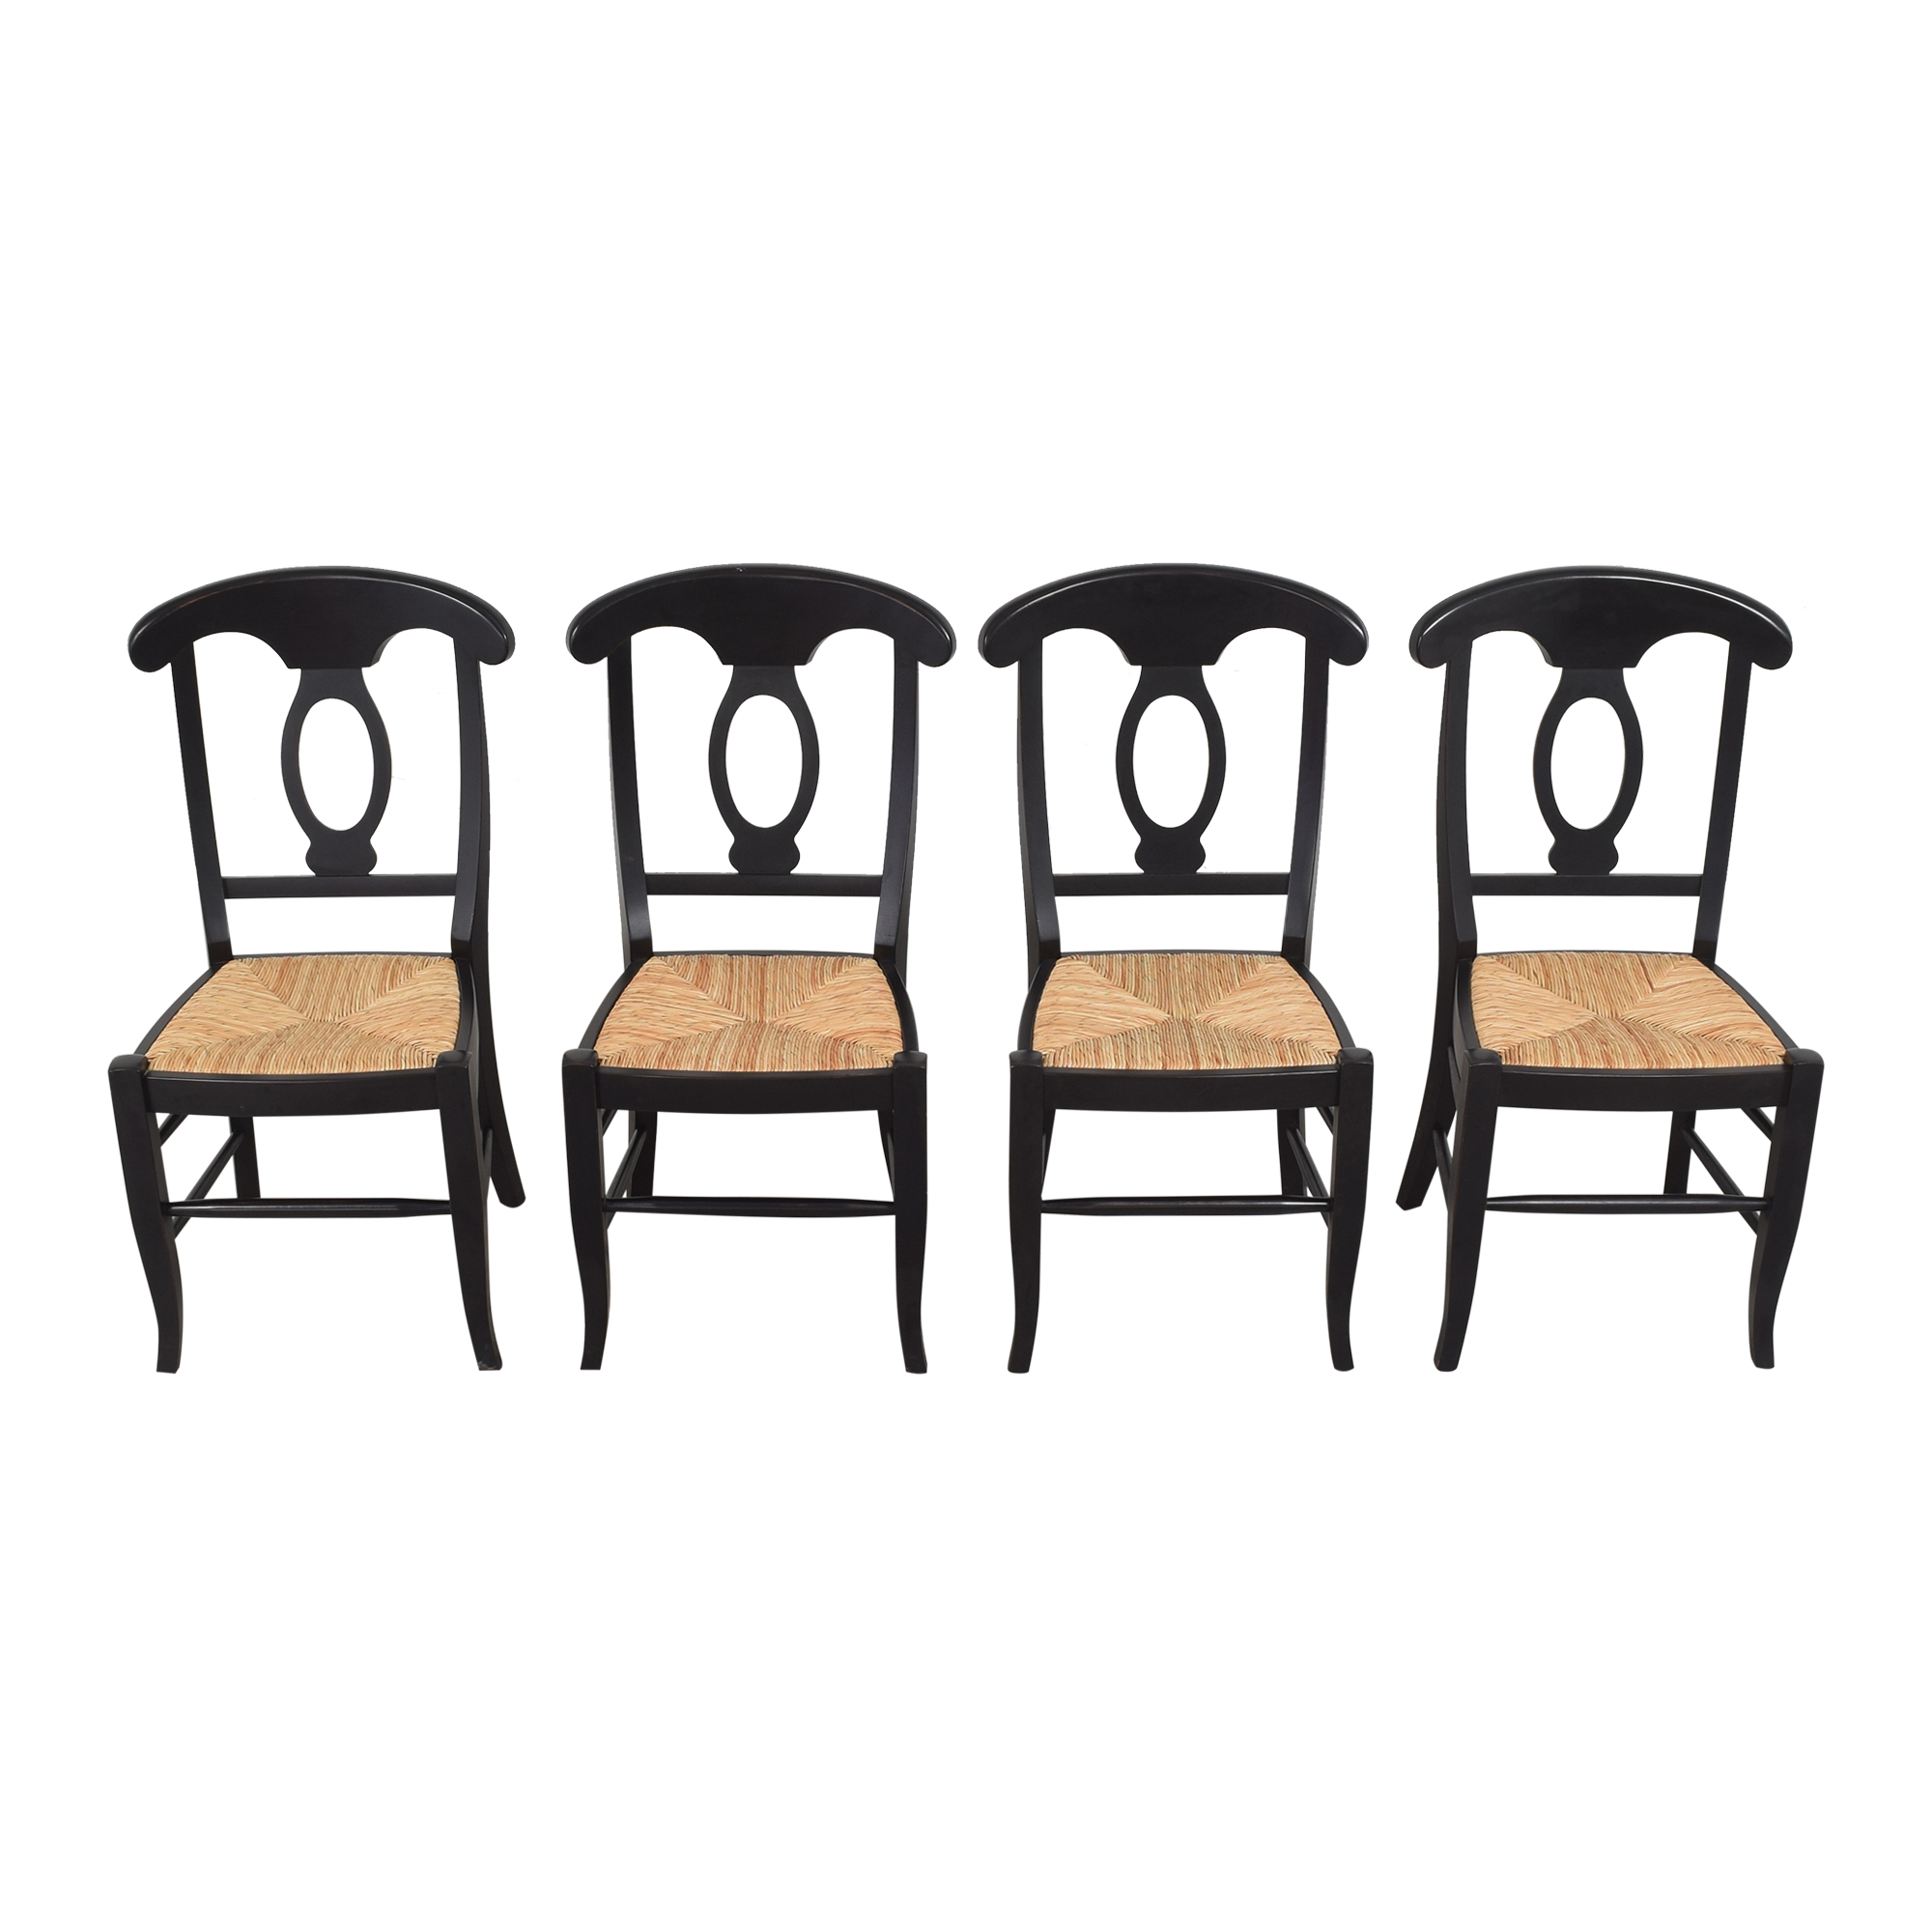 Pottery Barn Pottery Barn Napoleon Dining Side Chairs coupon